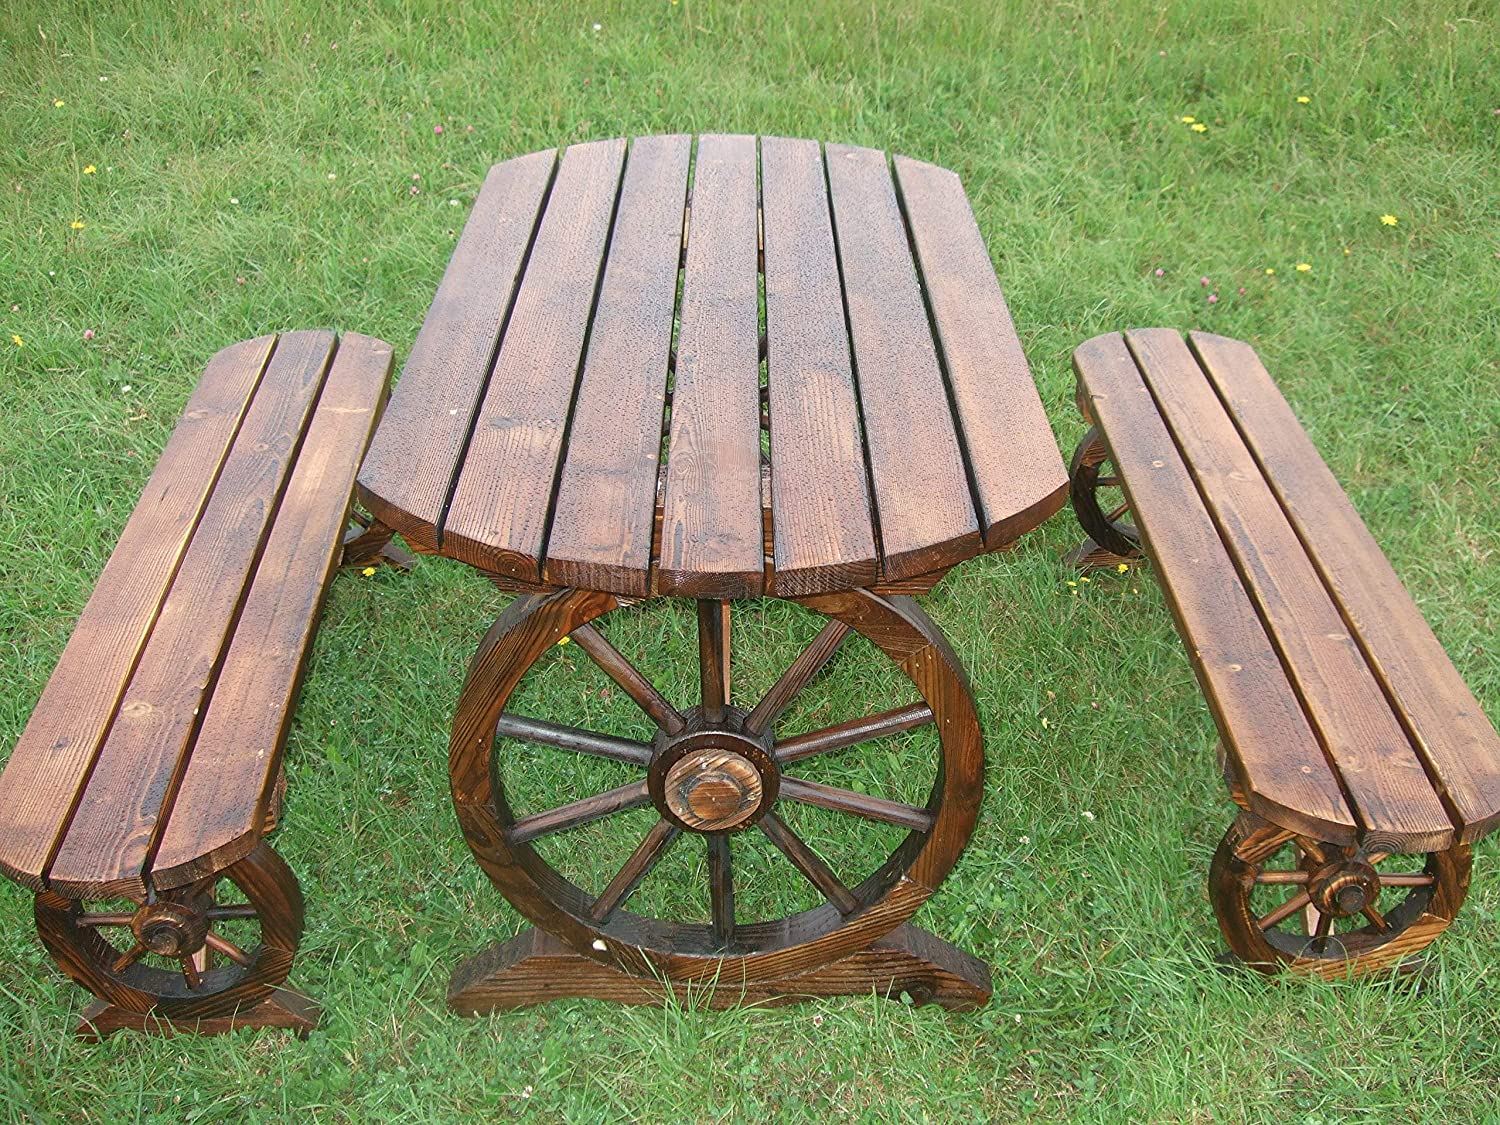 square top New hand made WAGON WHEEL BENCH SET.picnic garden patio table seat